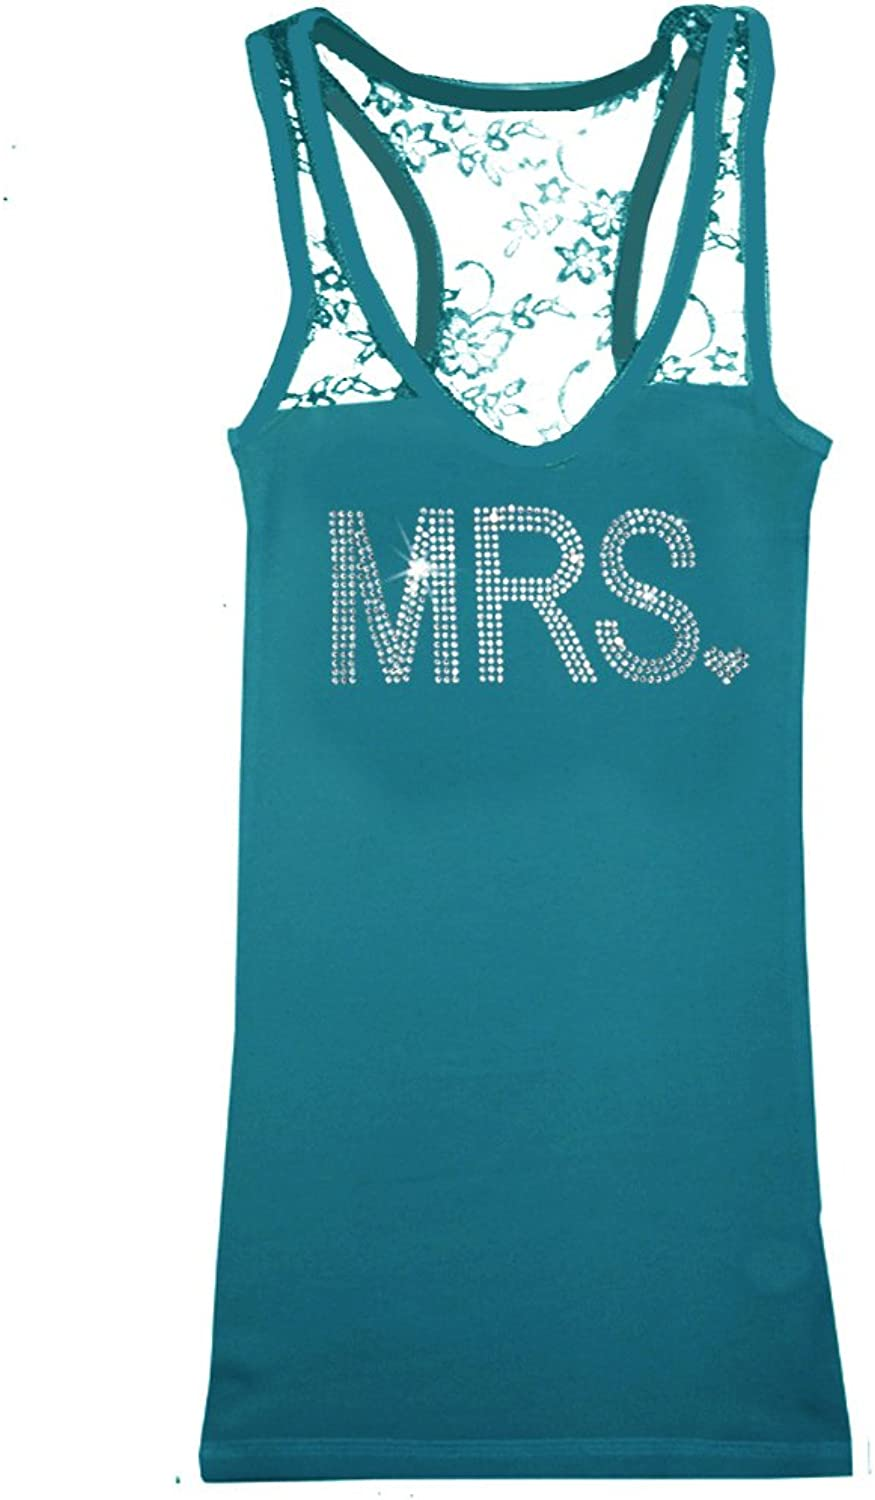 Classy Bride Lace Back Bridal Tank Top with MRS. in Rhinestones